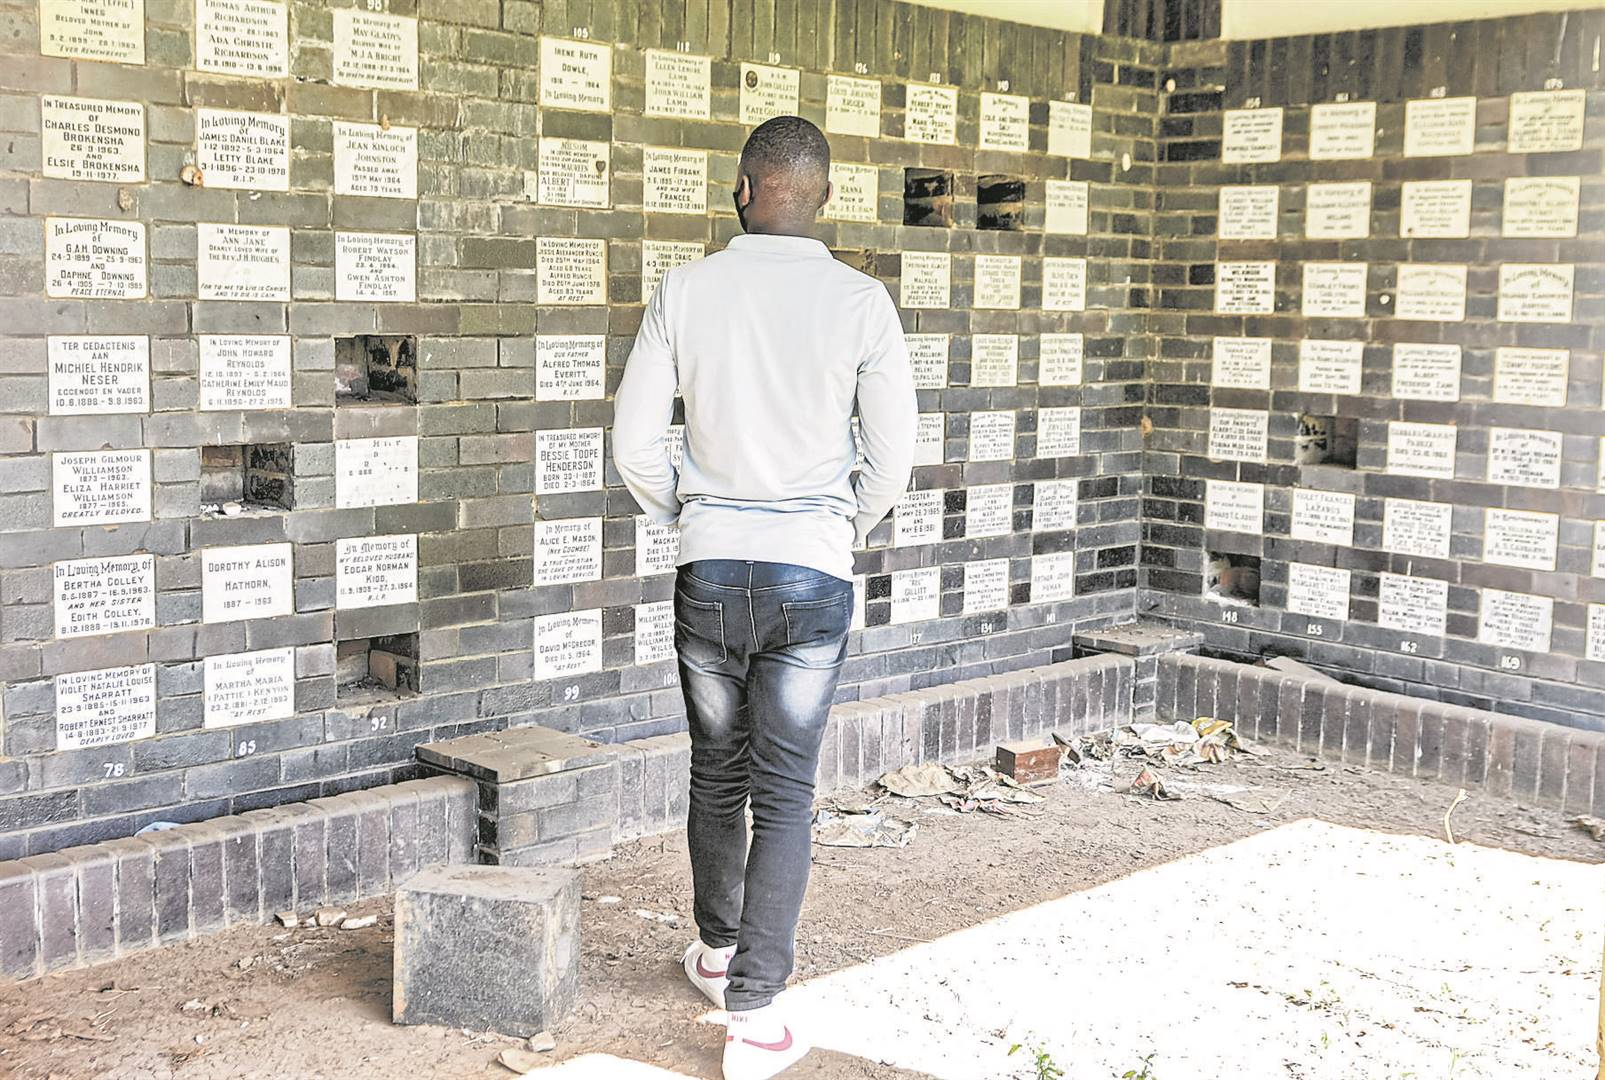 The Mountain Rise Cemetery's cremation niche memorial wall has been left in an appalling state with overgrown grass and a memorial wall being allegedly vandalised by whoonga addicts.